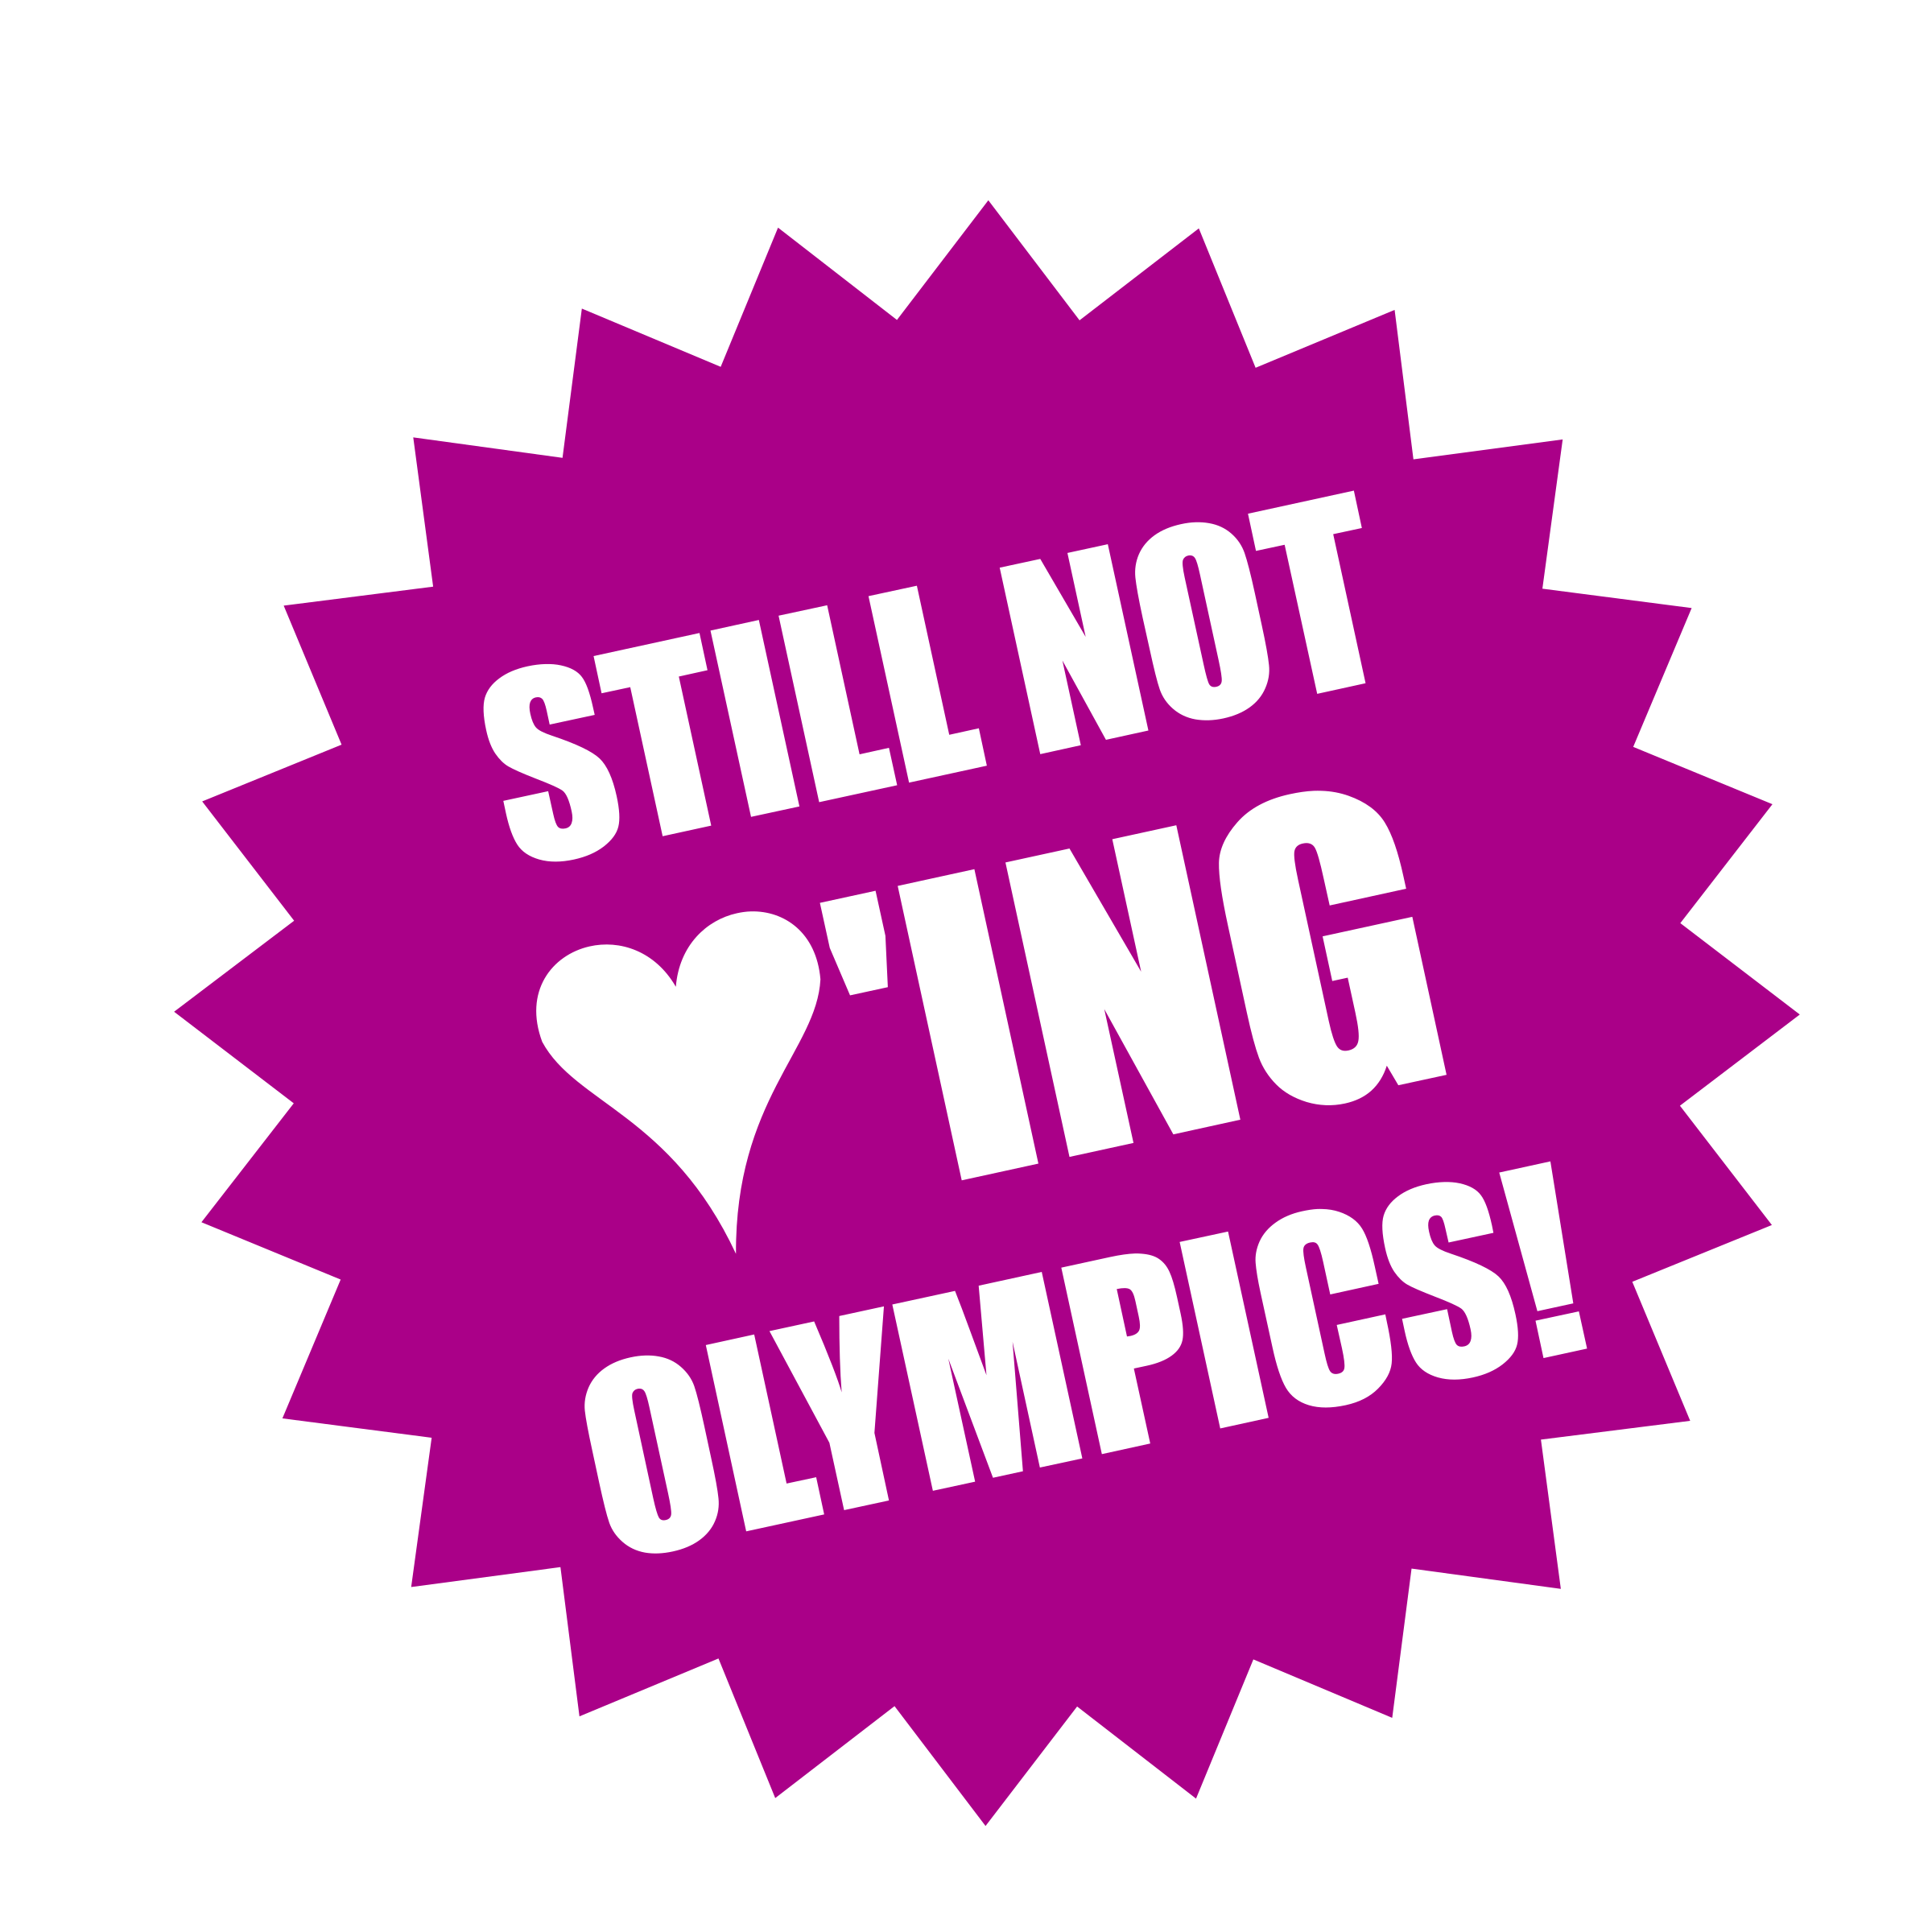 Still not loving Olympics by worker